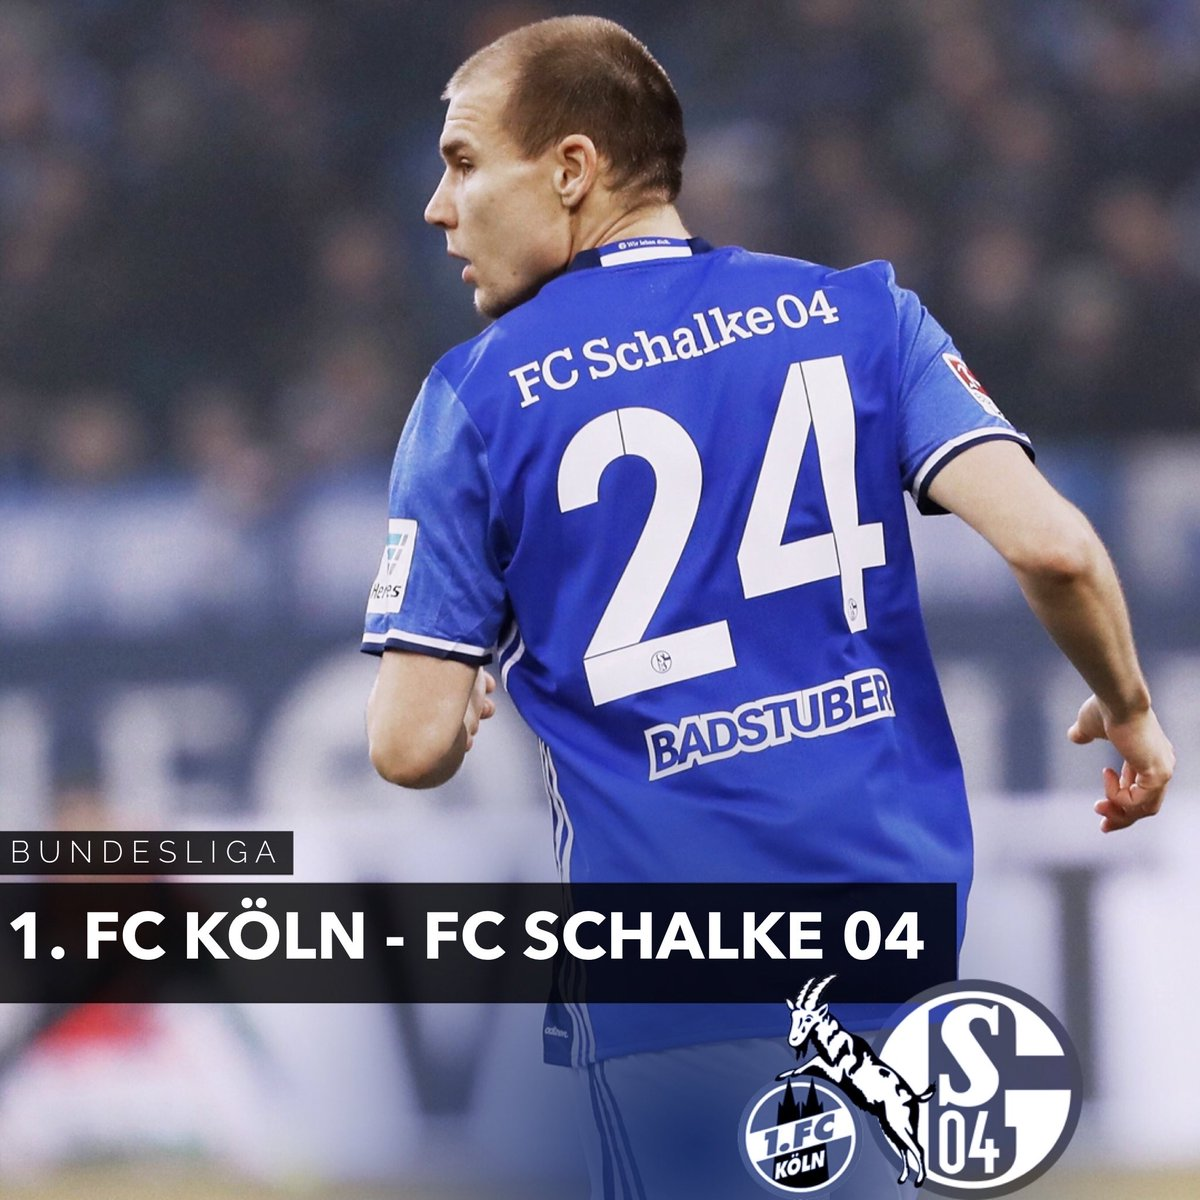 Matchday! 👊 #KOES04 https://t.co/LAOBYwE7rx